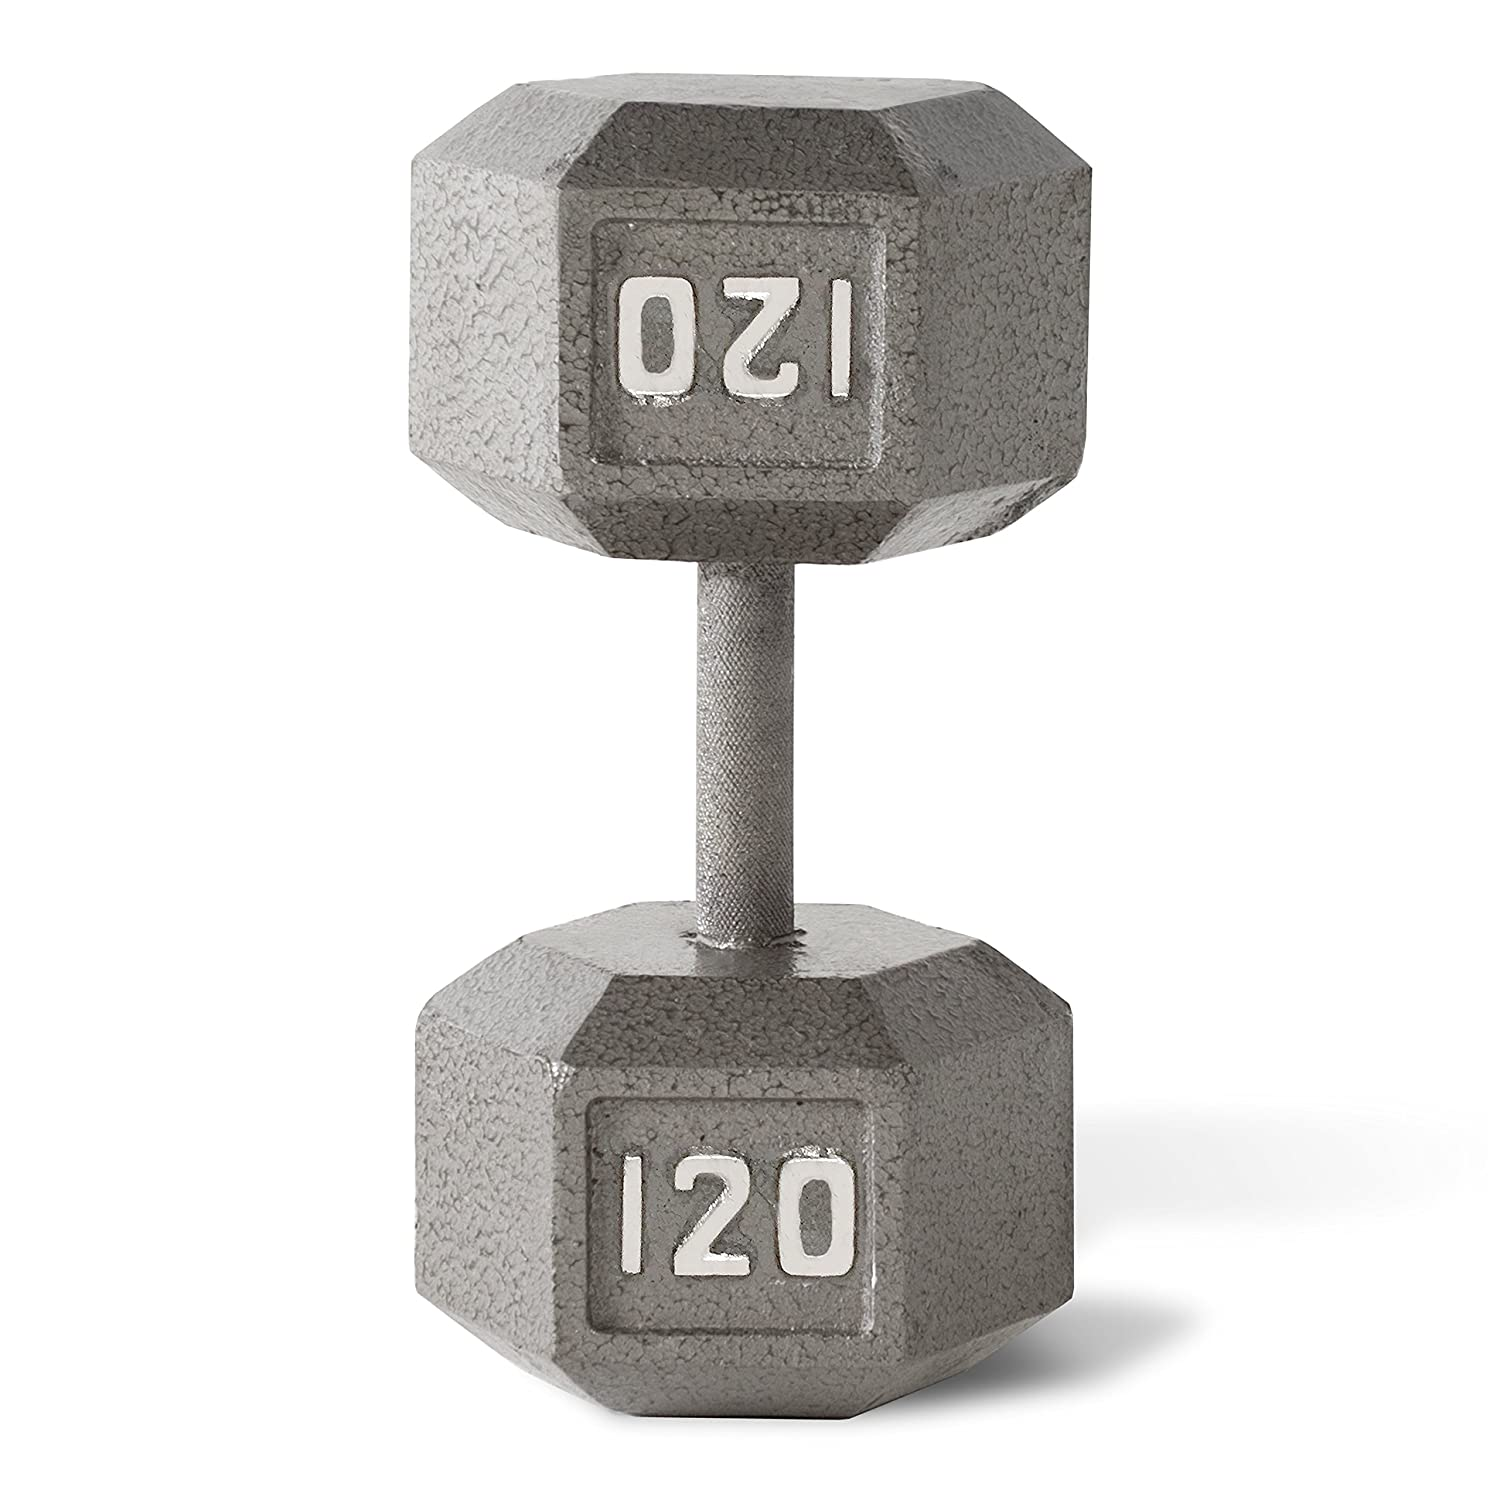 Dumbbell Set Big 5: 14 Essentials For Your Home Powerlifting Gym